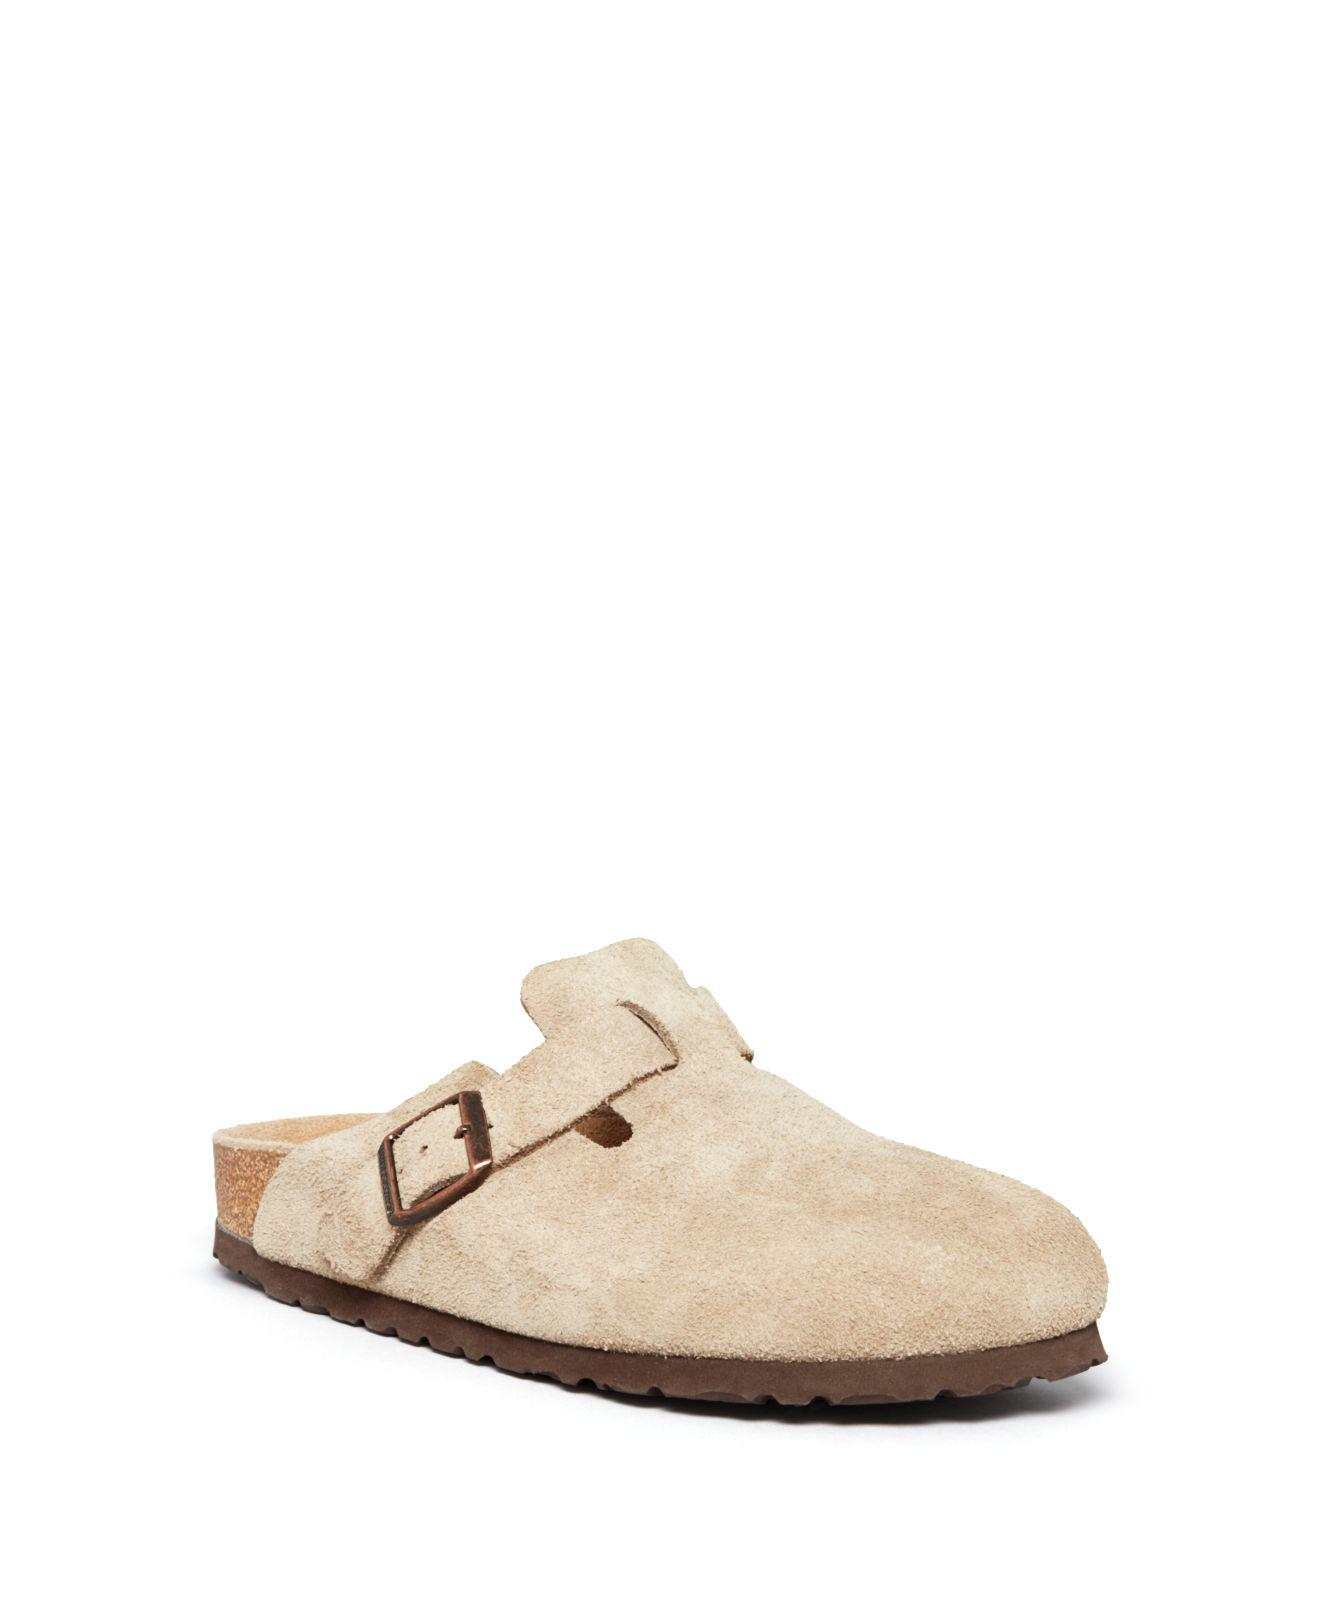 cykzcz54PL Womens Boston Suede Mules oRDdvbofyP